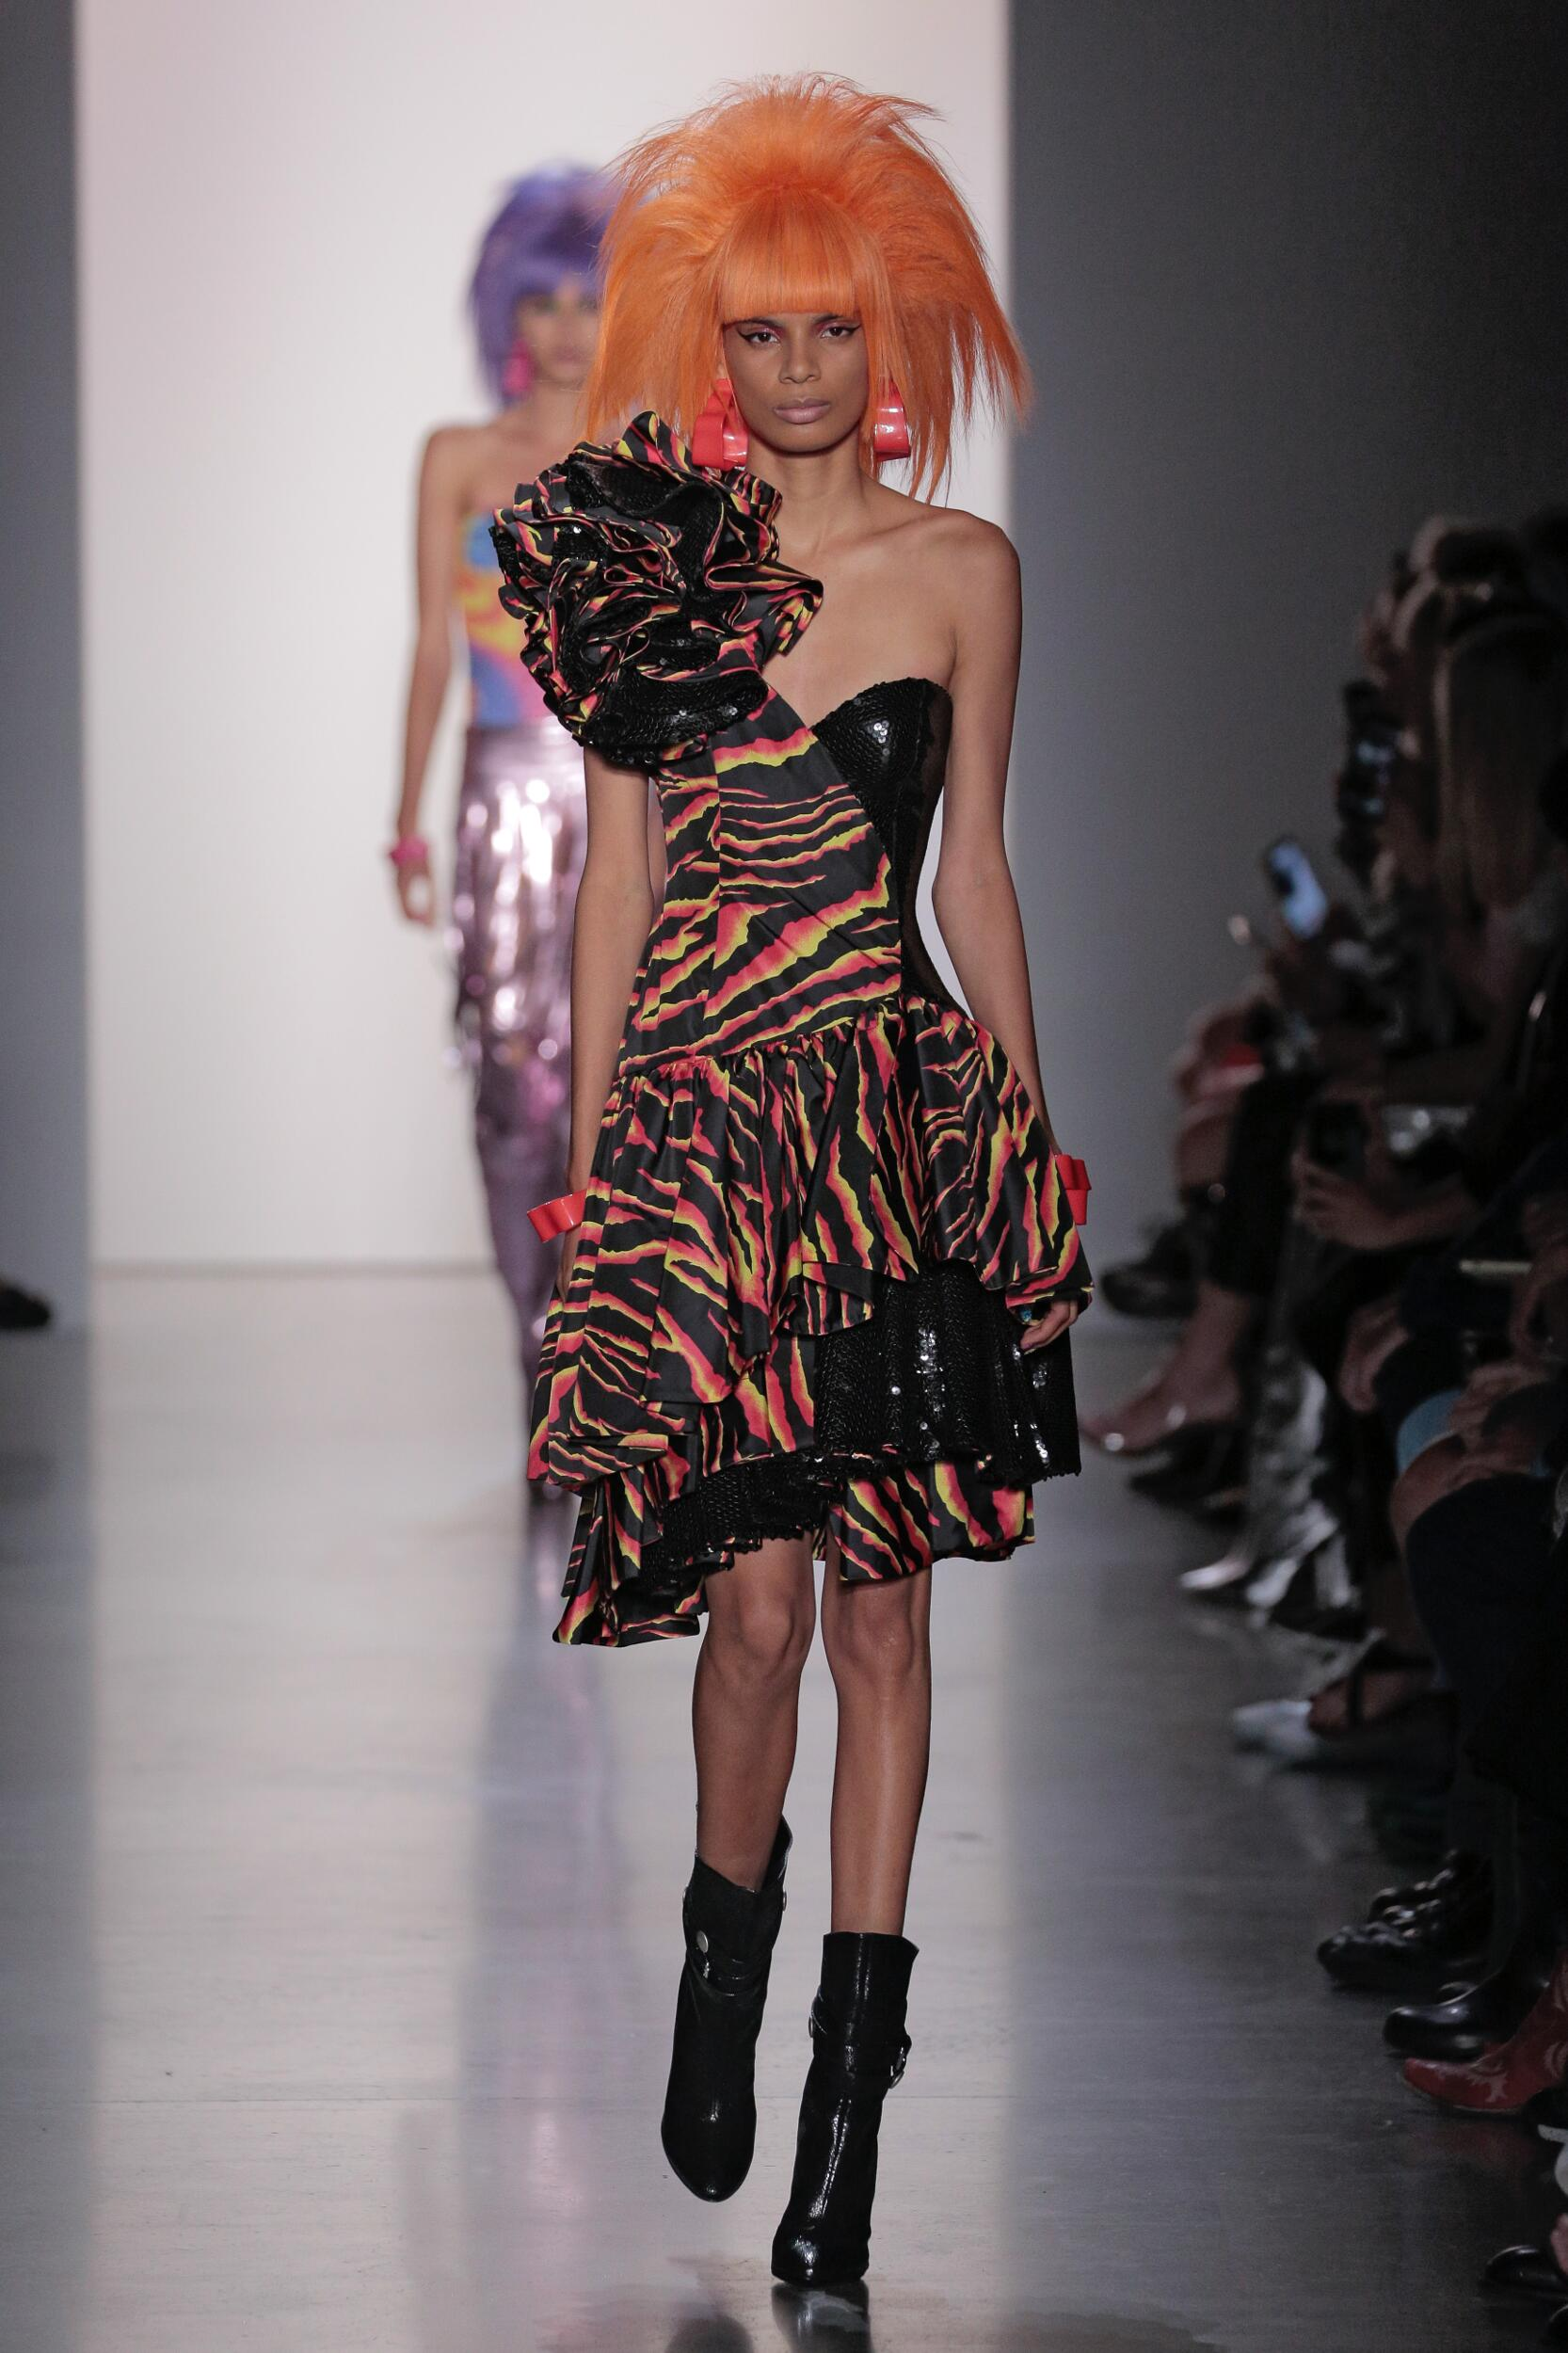 Fashion Model Jeremy Scott Catwalk